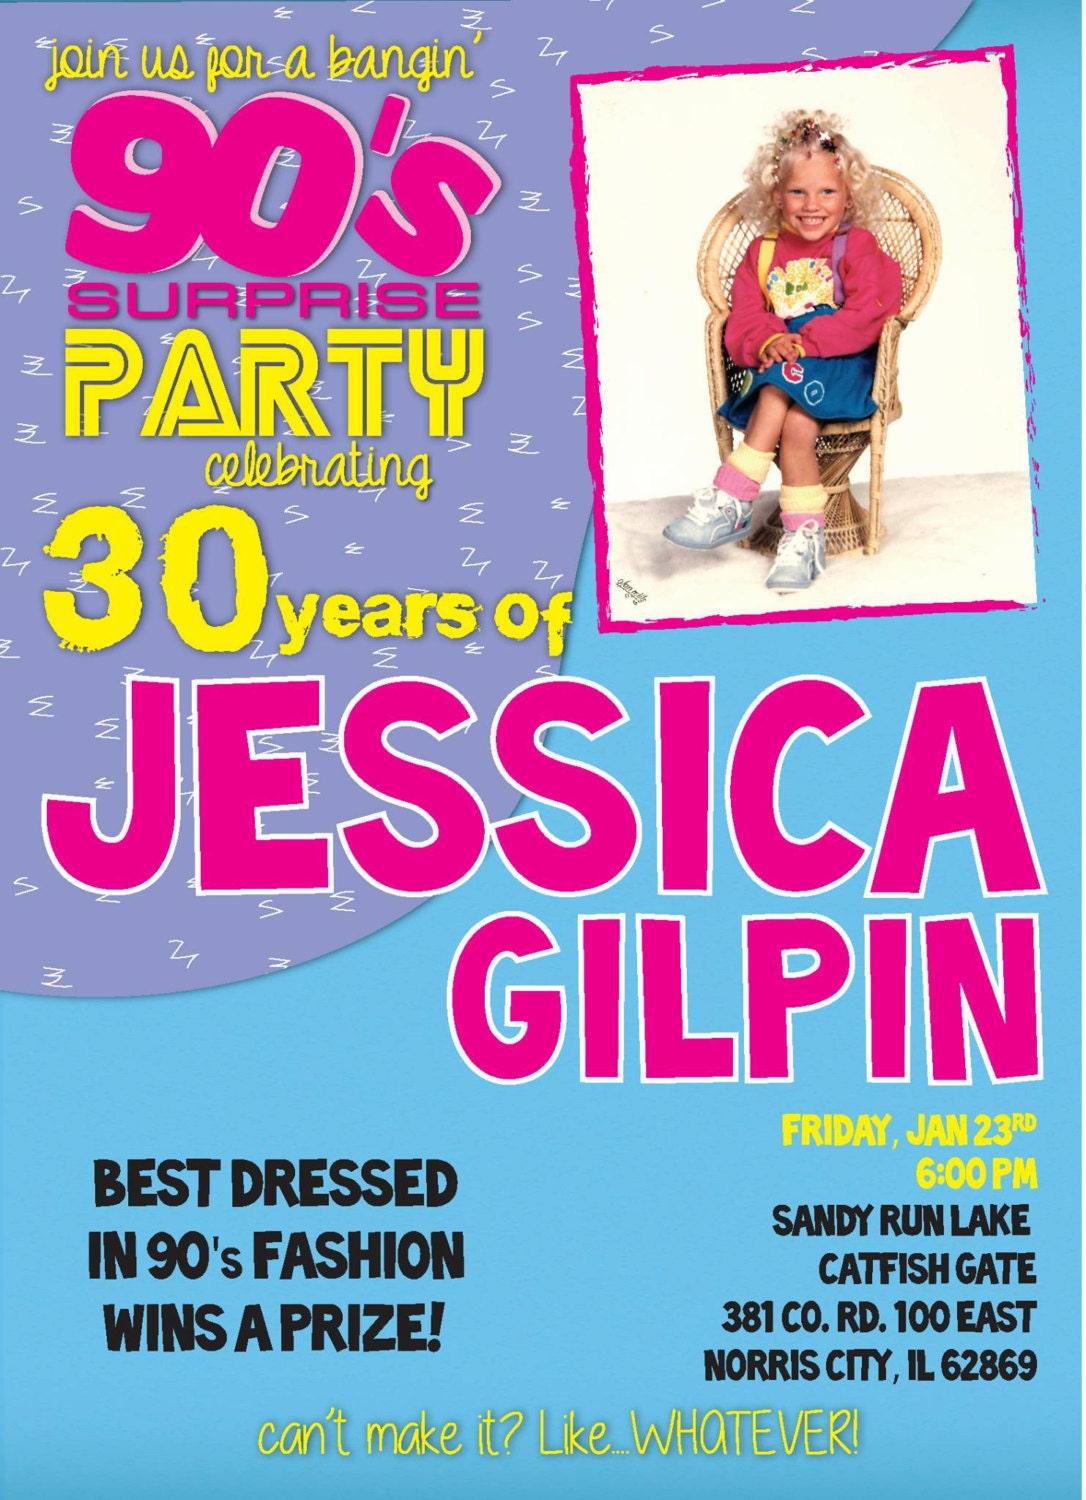 Ultimate S Party Invitation Digital File You Print At Home - 90s party invitation template